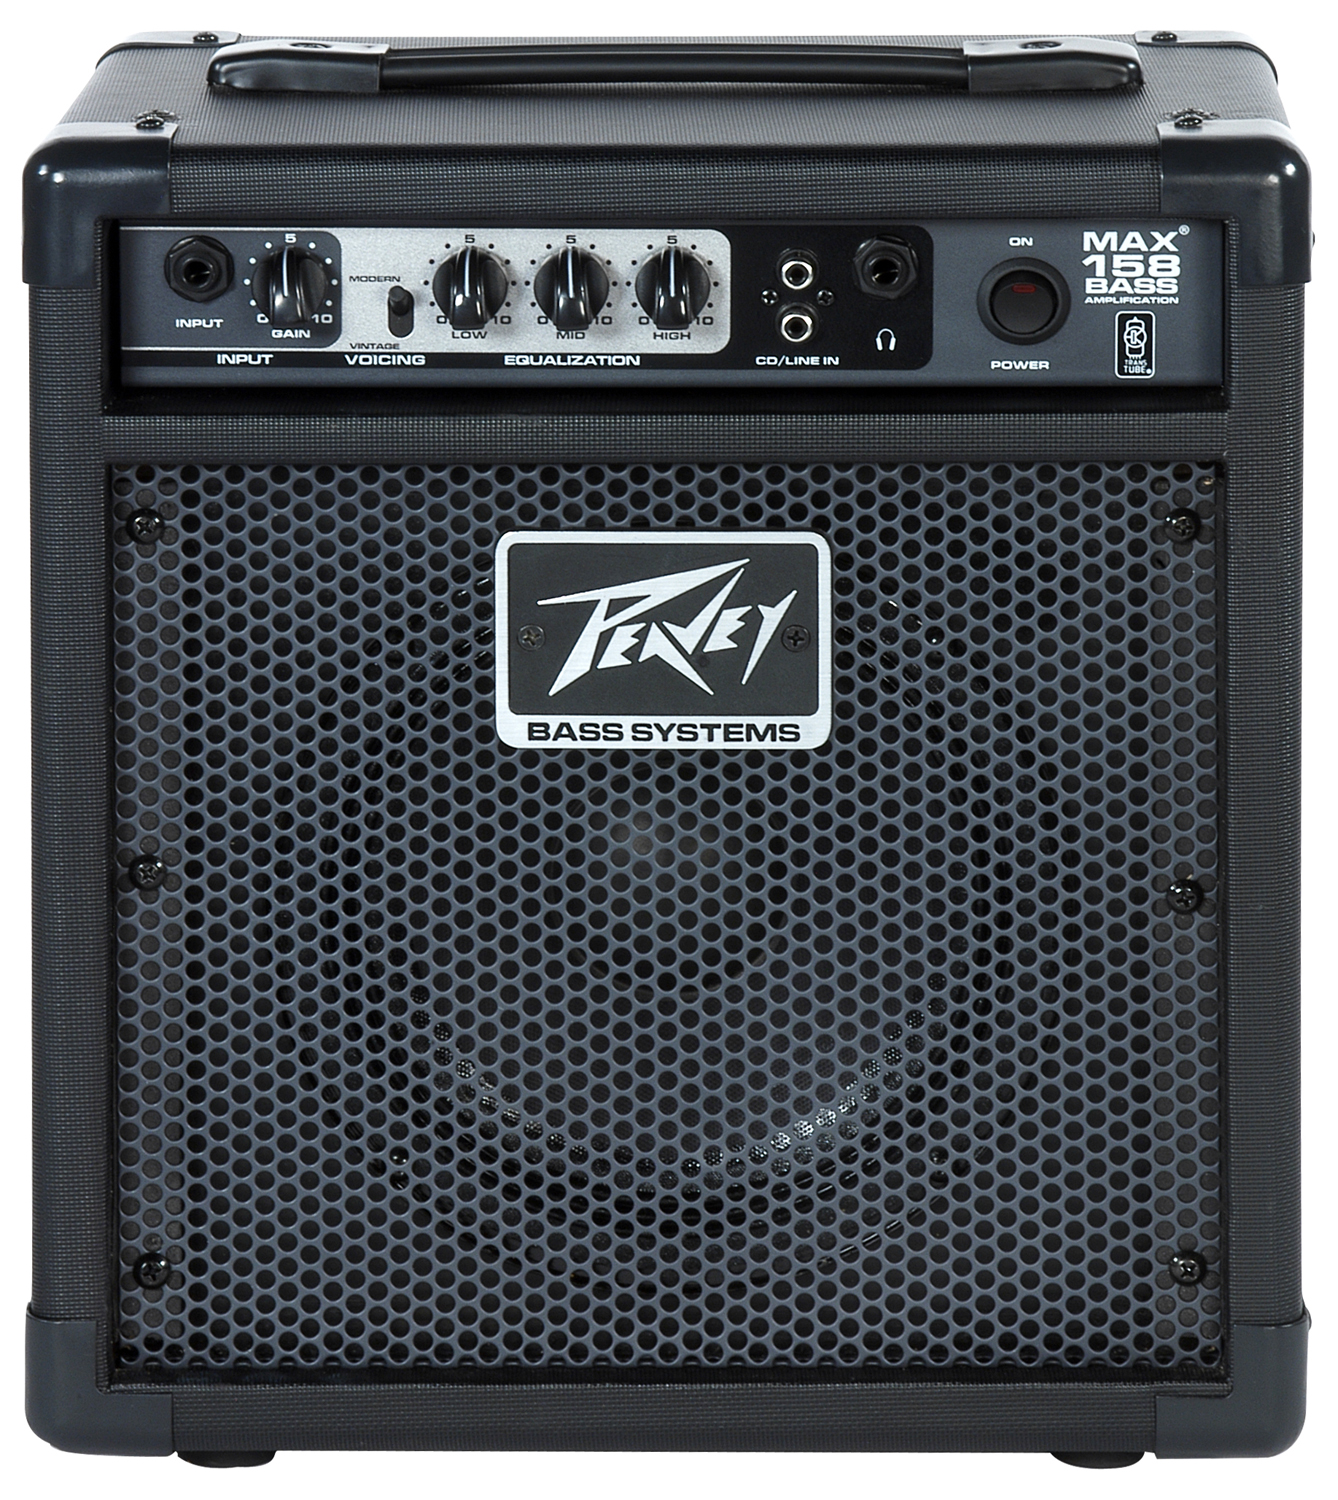 peavey max 158 amp electric bass guitar 8 speaker combo 15 watt amplifier pev13 573500 rs. Black Bedroom Furniture Sets. Home Design Ideas